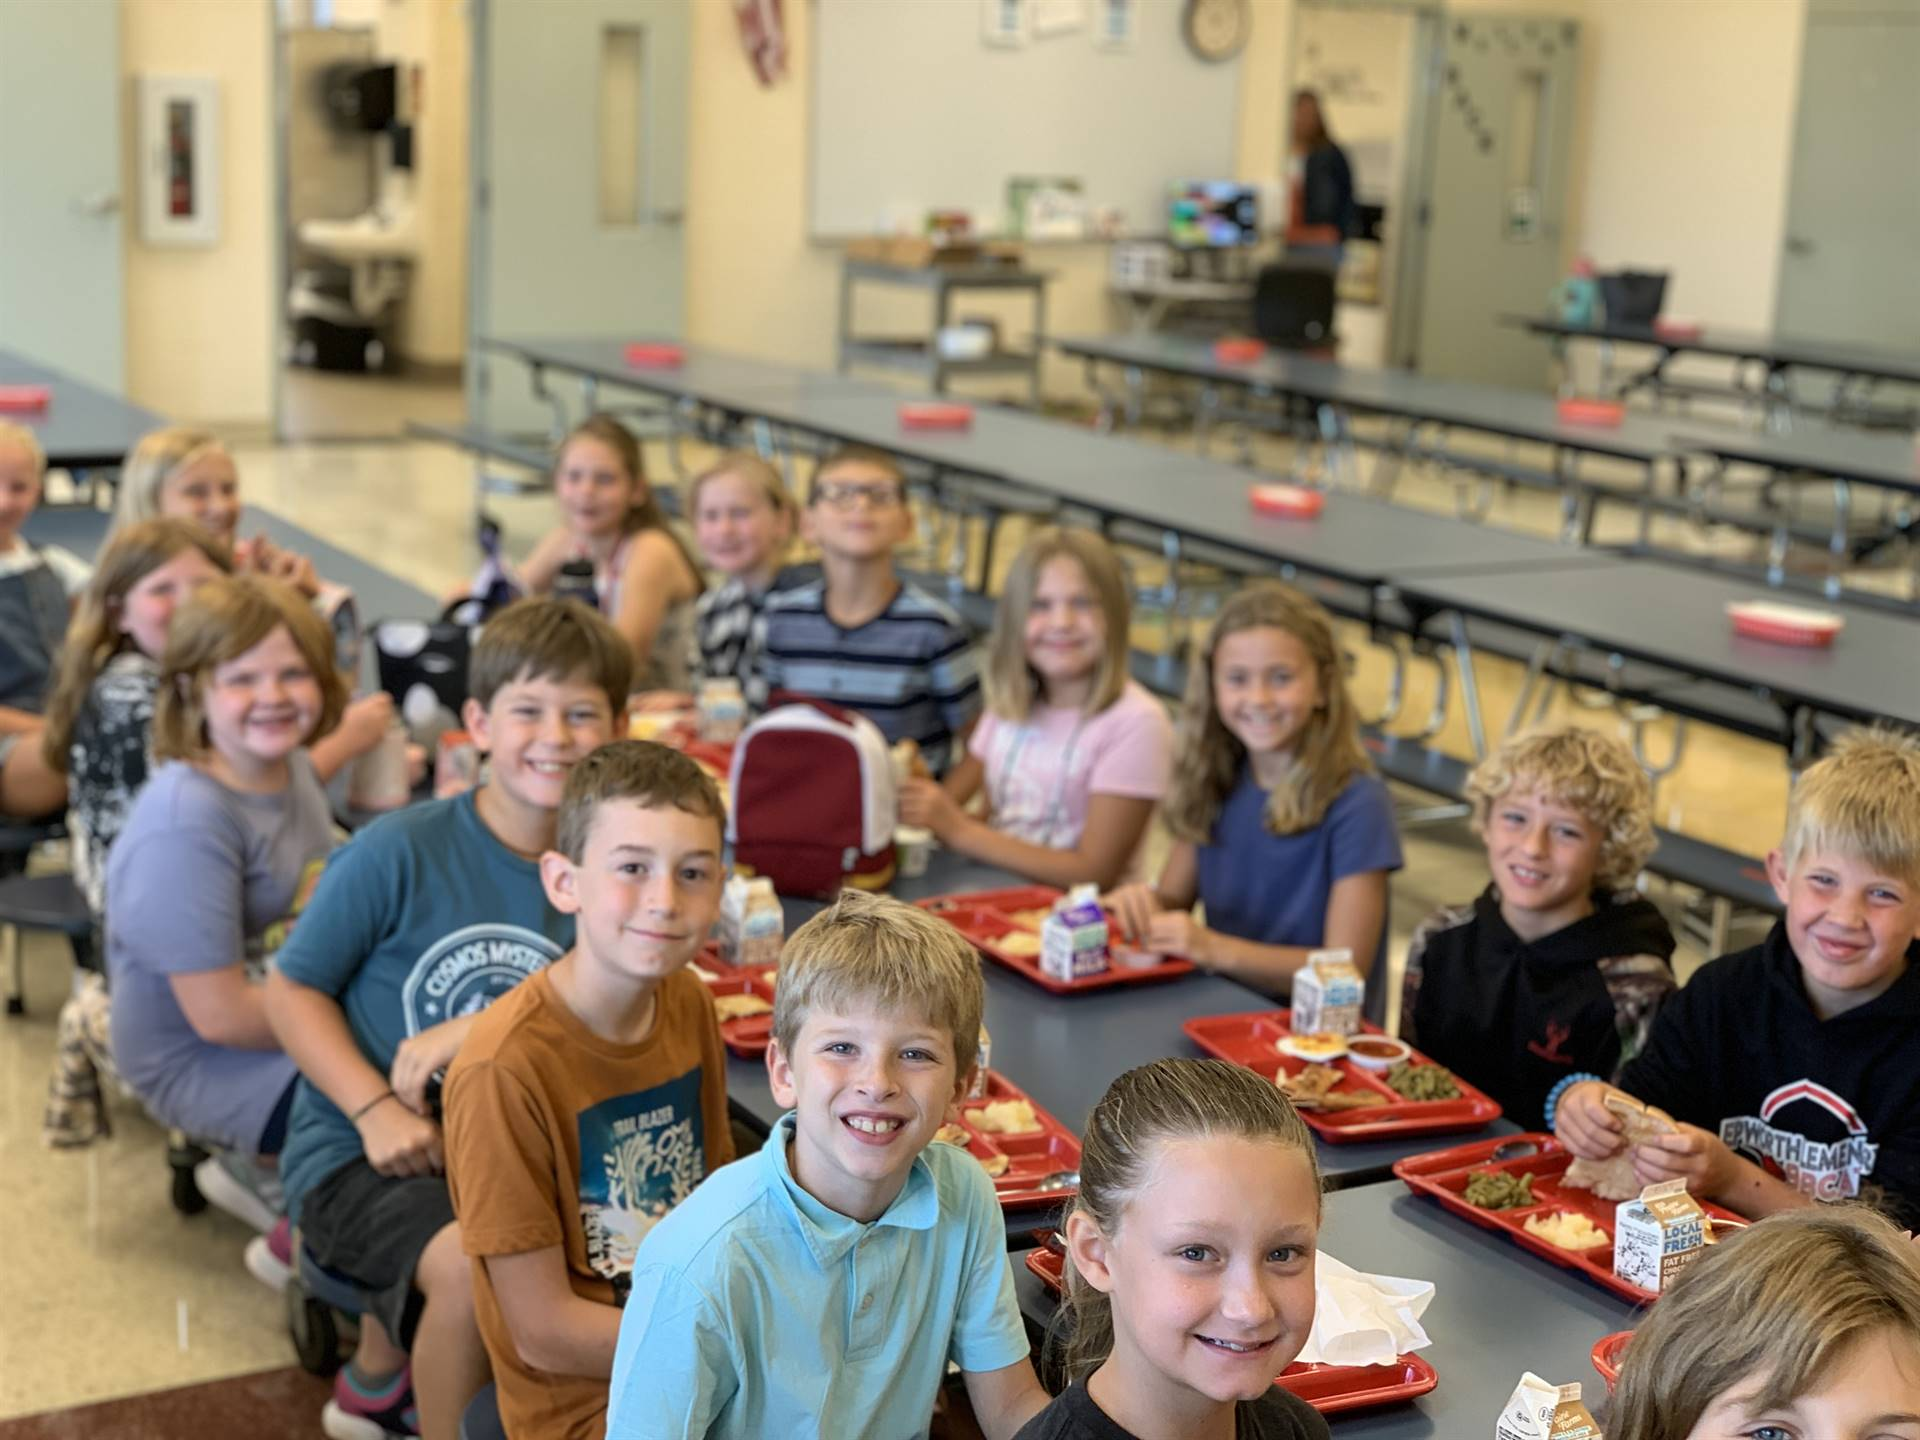 4th graders at lunch